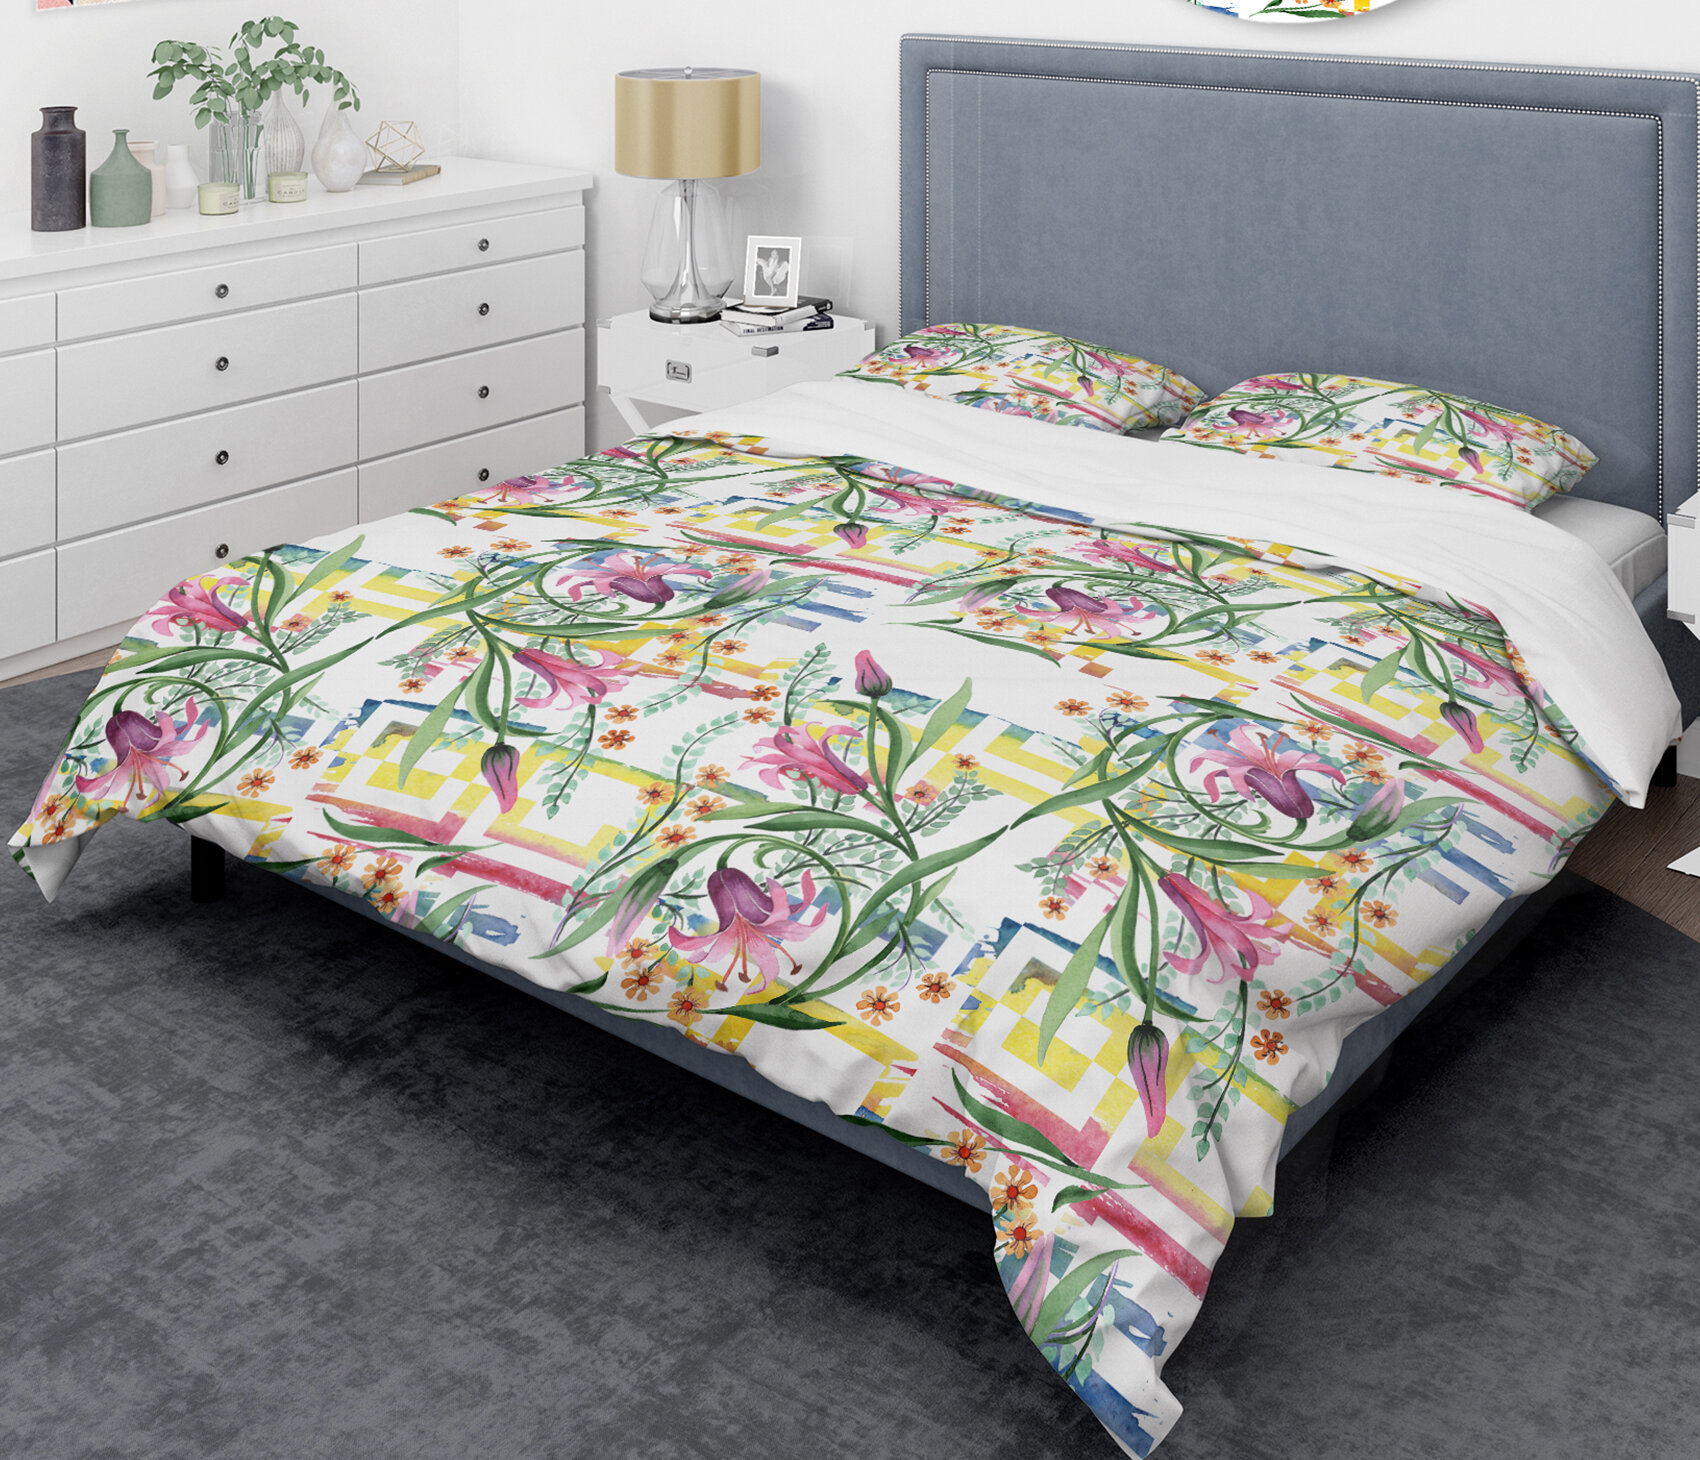 East Urban Home Floral Botanical Retro Xi Mid Century Duvet Cover Set Wayfair